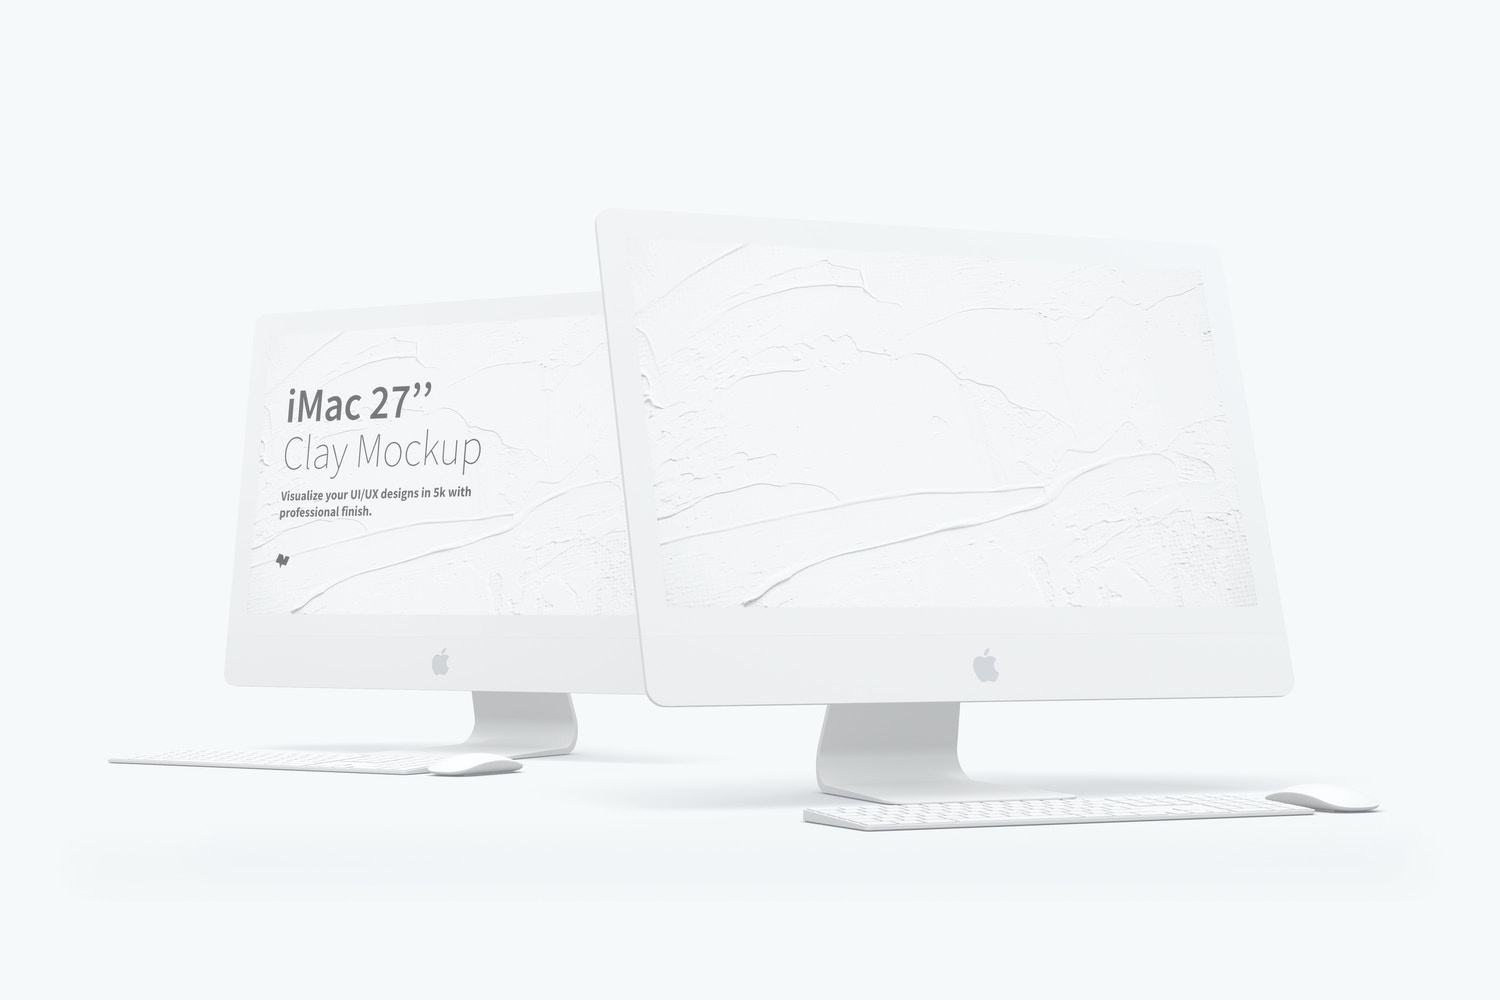 "Clay iMac 27"" Mockup by Original Mockups on Original Mockups"